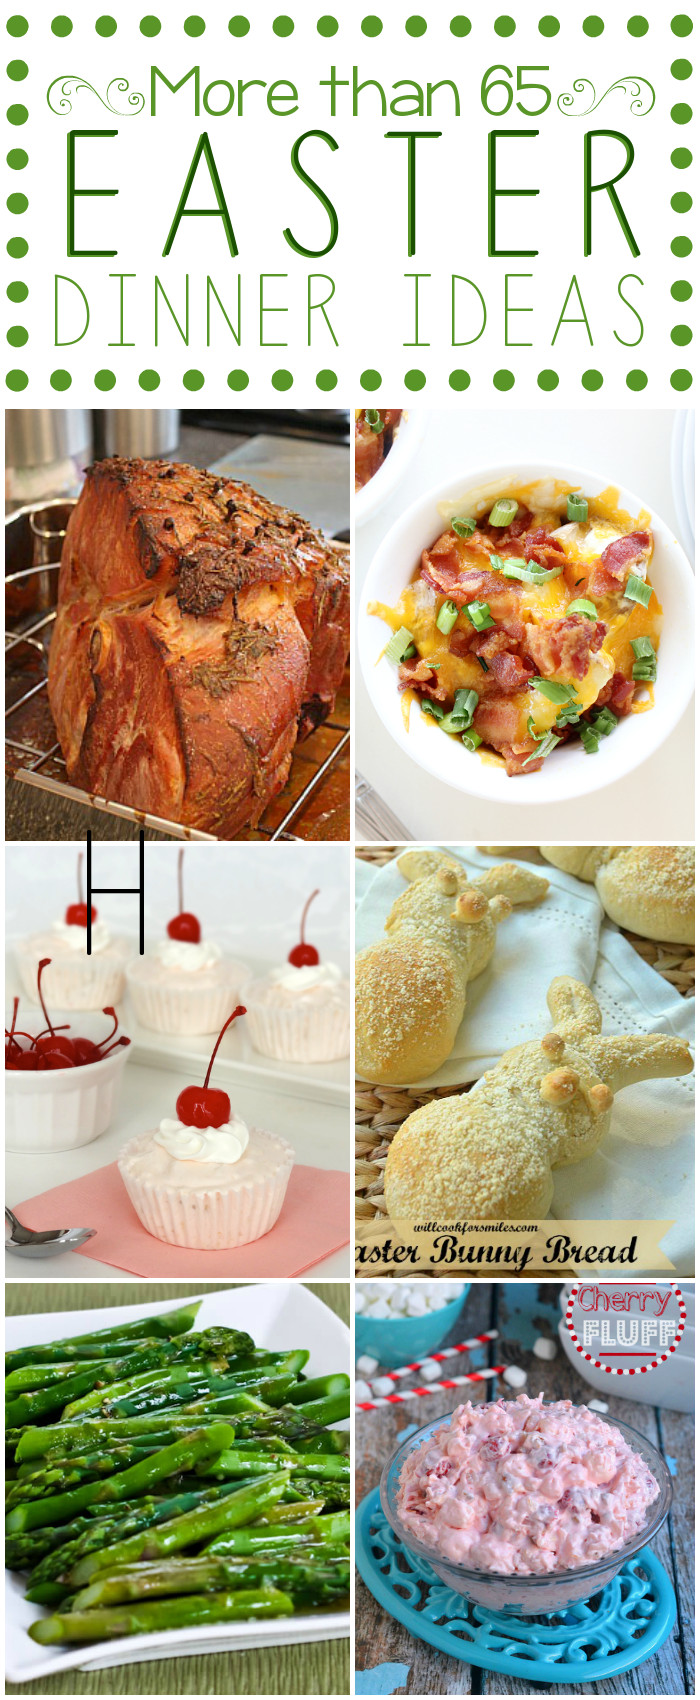 Dinner Ideas For Easter  Easter Dinner Ideas Round Up Mom s Test Kitchen